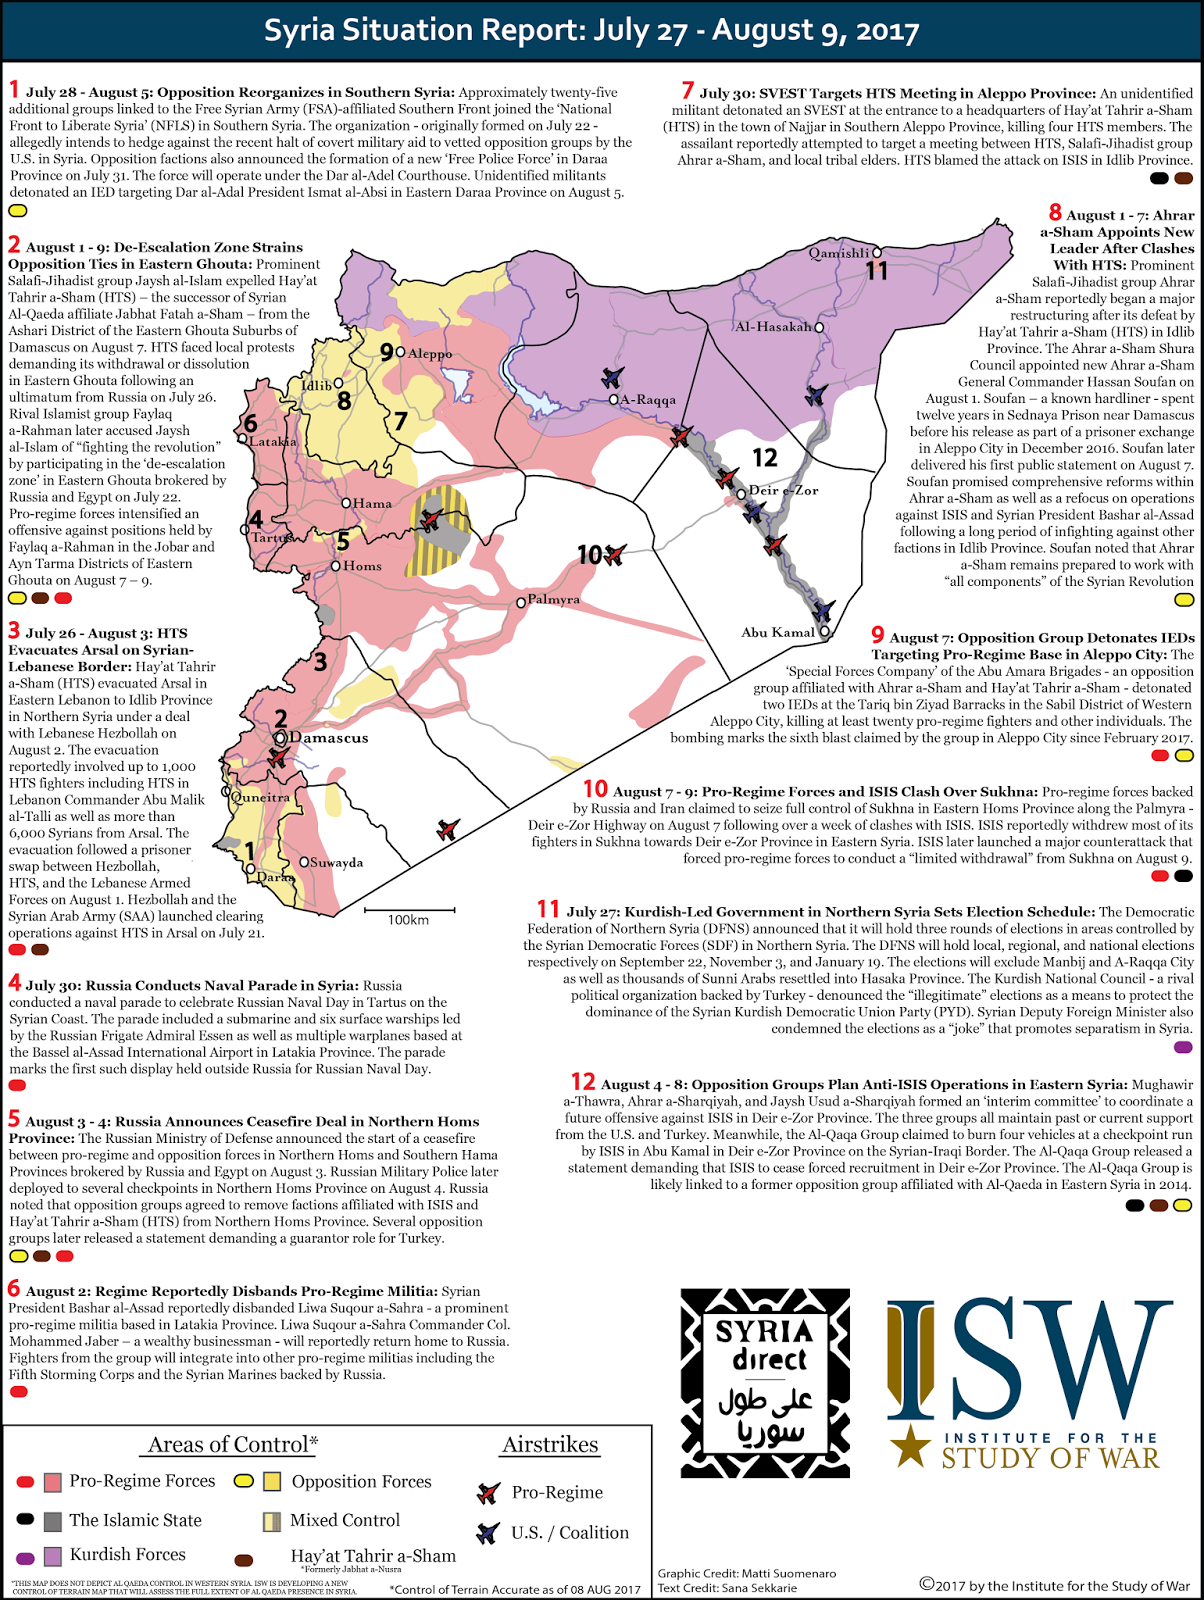 Syria Situation Report: July 27 - August 9, 2017